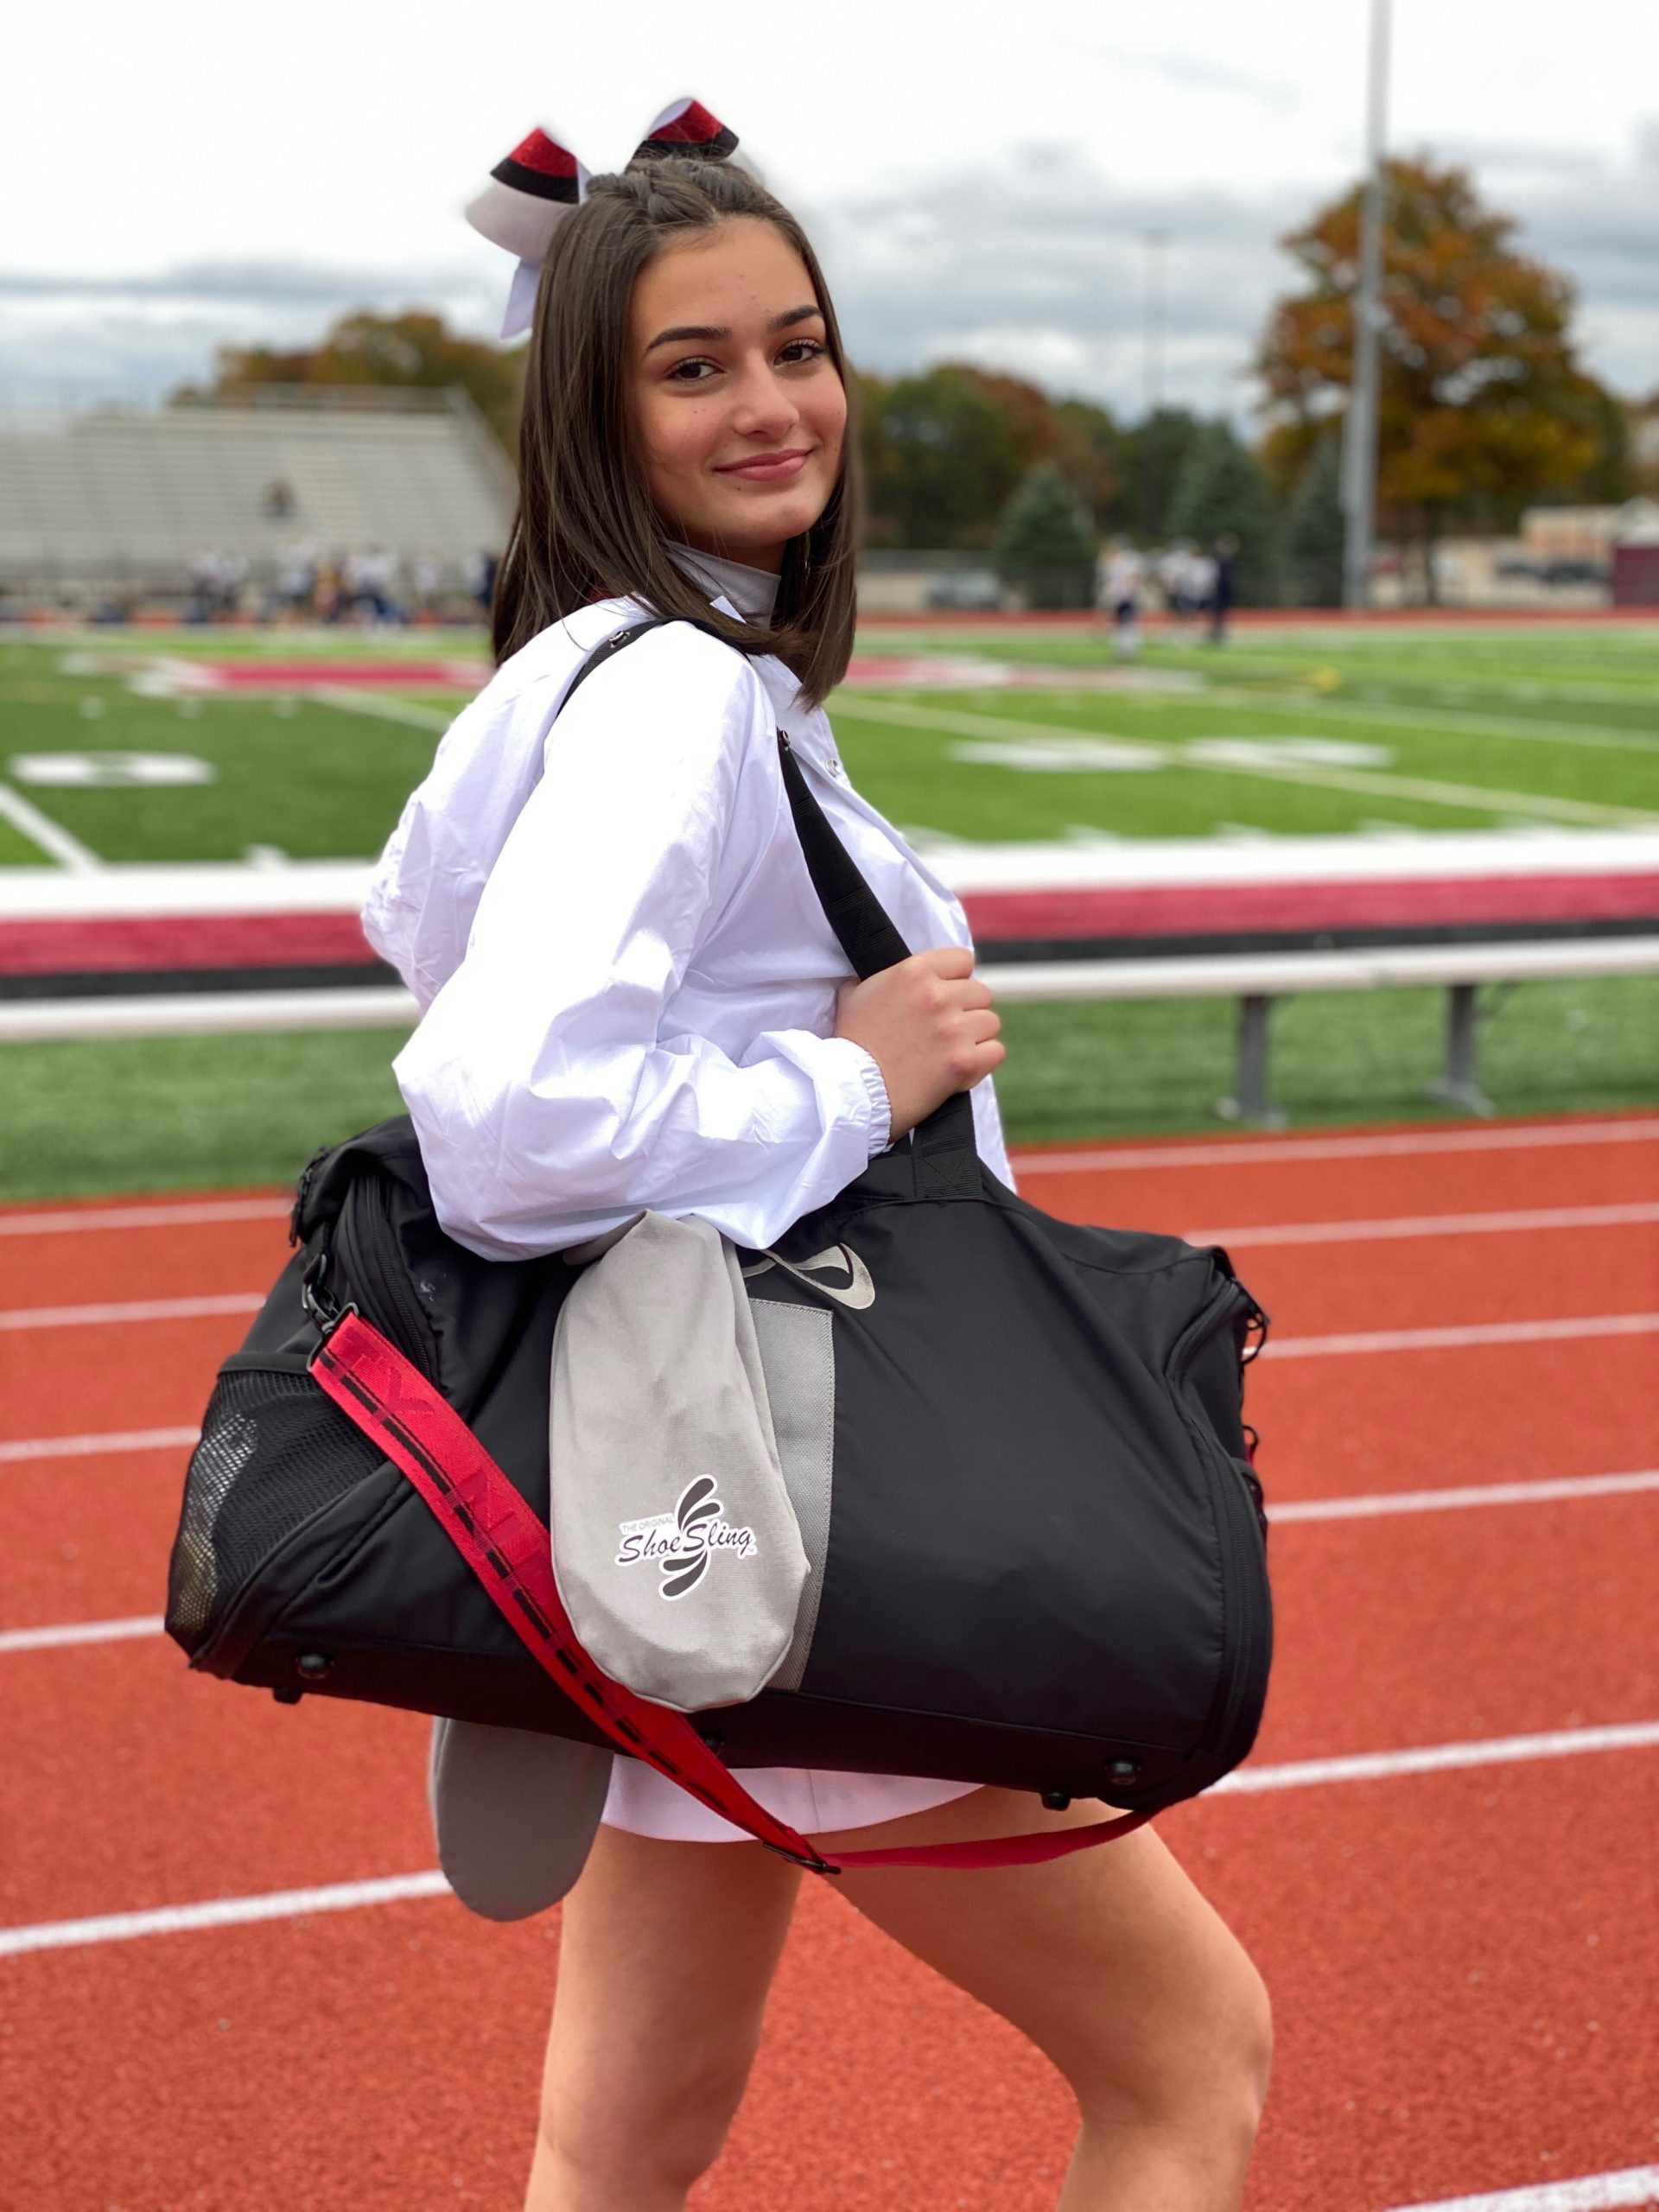 Young woman with titanium ShoeSling over gear bag at high school football game